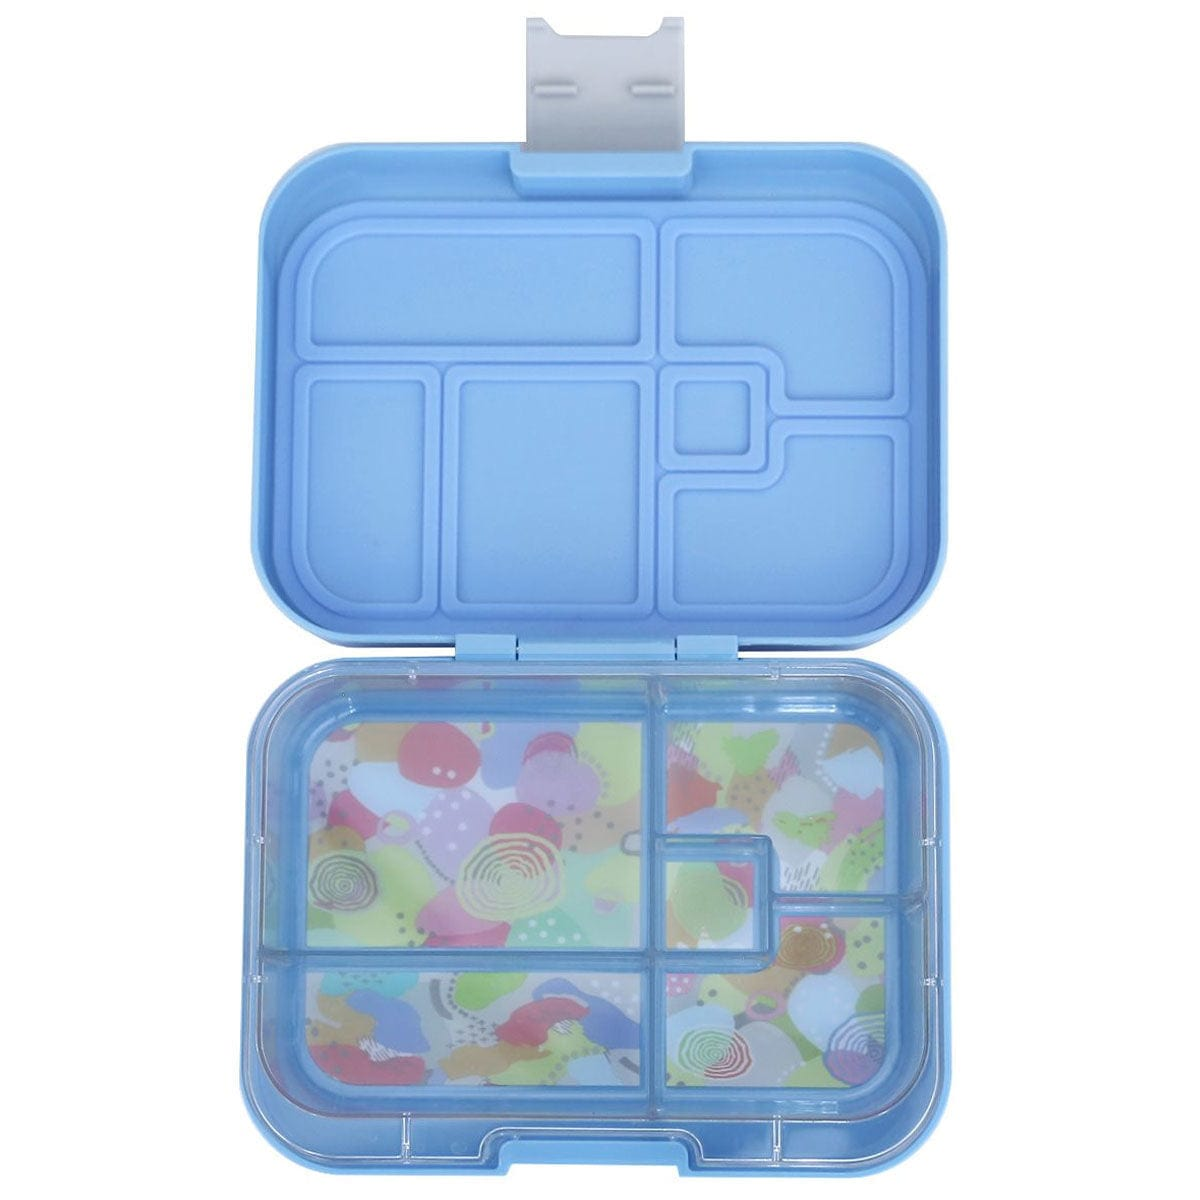 Munchbox Midi5 Pastel Collection - Blue Coco